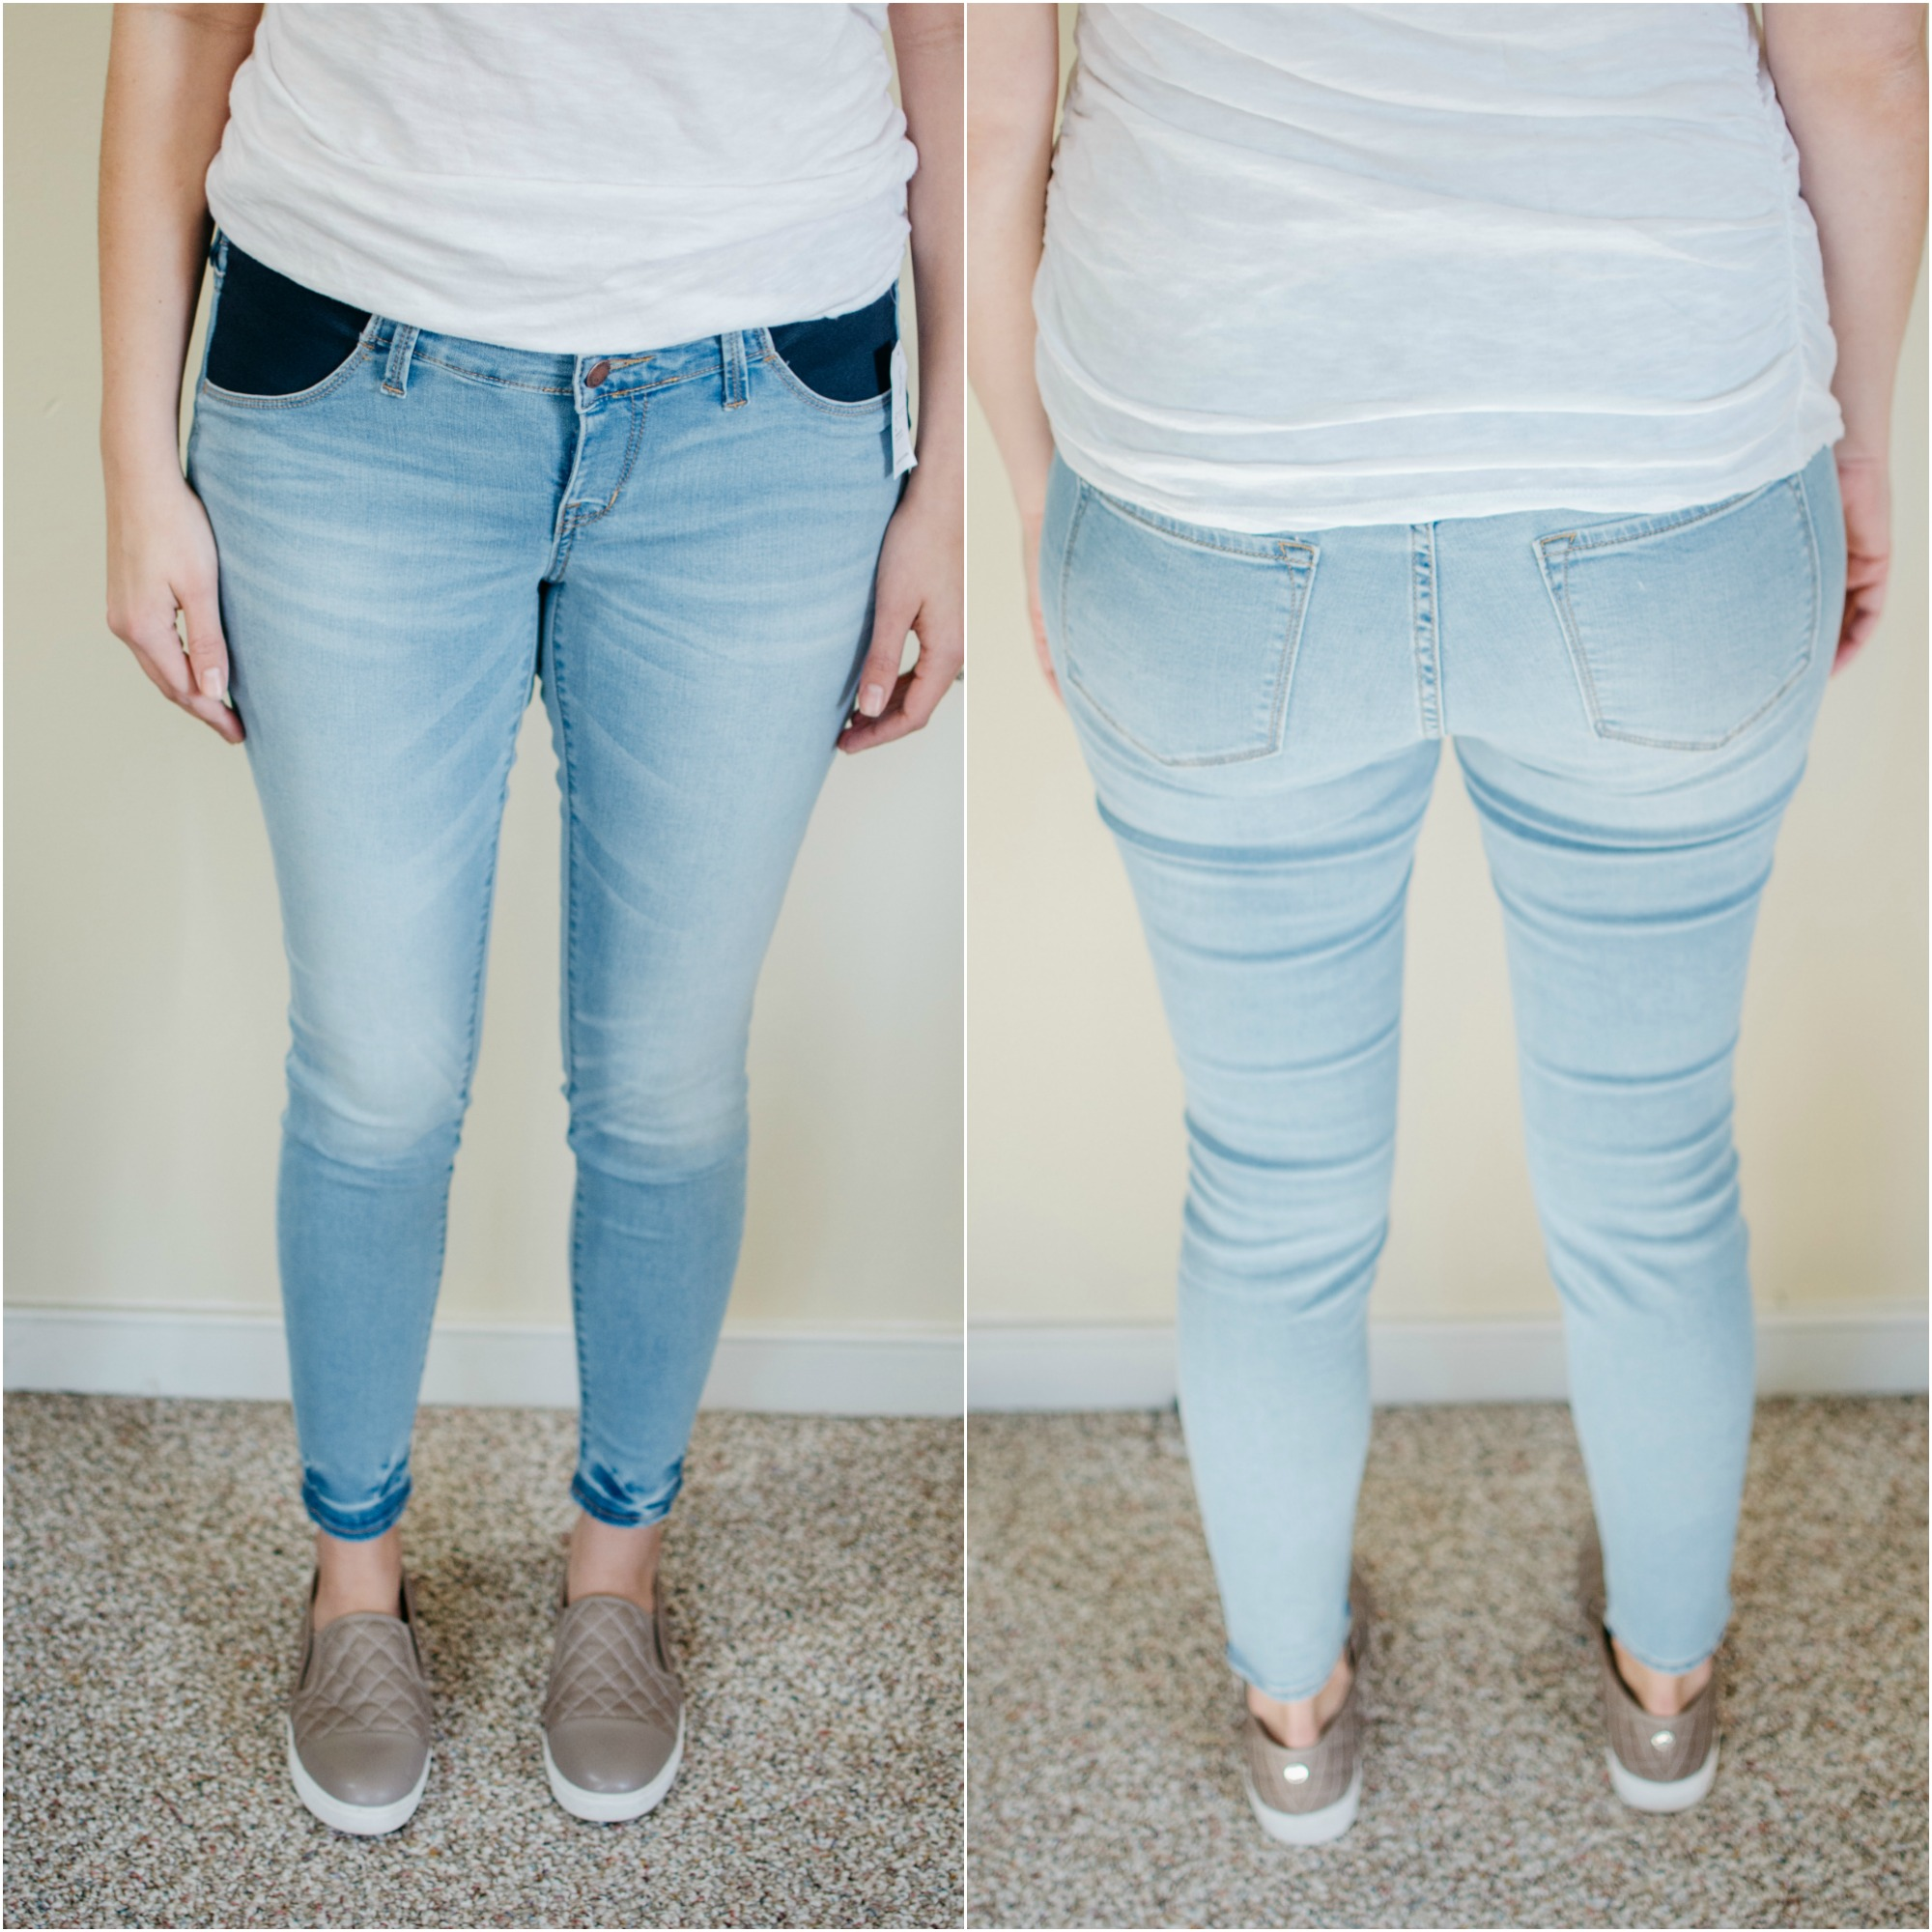 Old Navy Rockstar Maternity Jeans Review | See reviews of over 15 maternity jeans brands by clicking through to this post! | bylaurenm.com